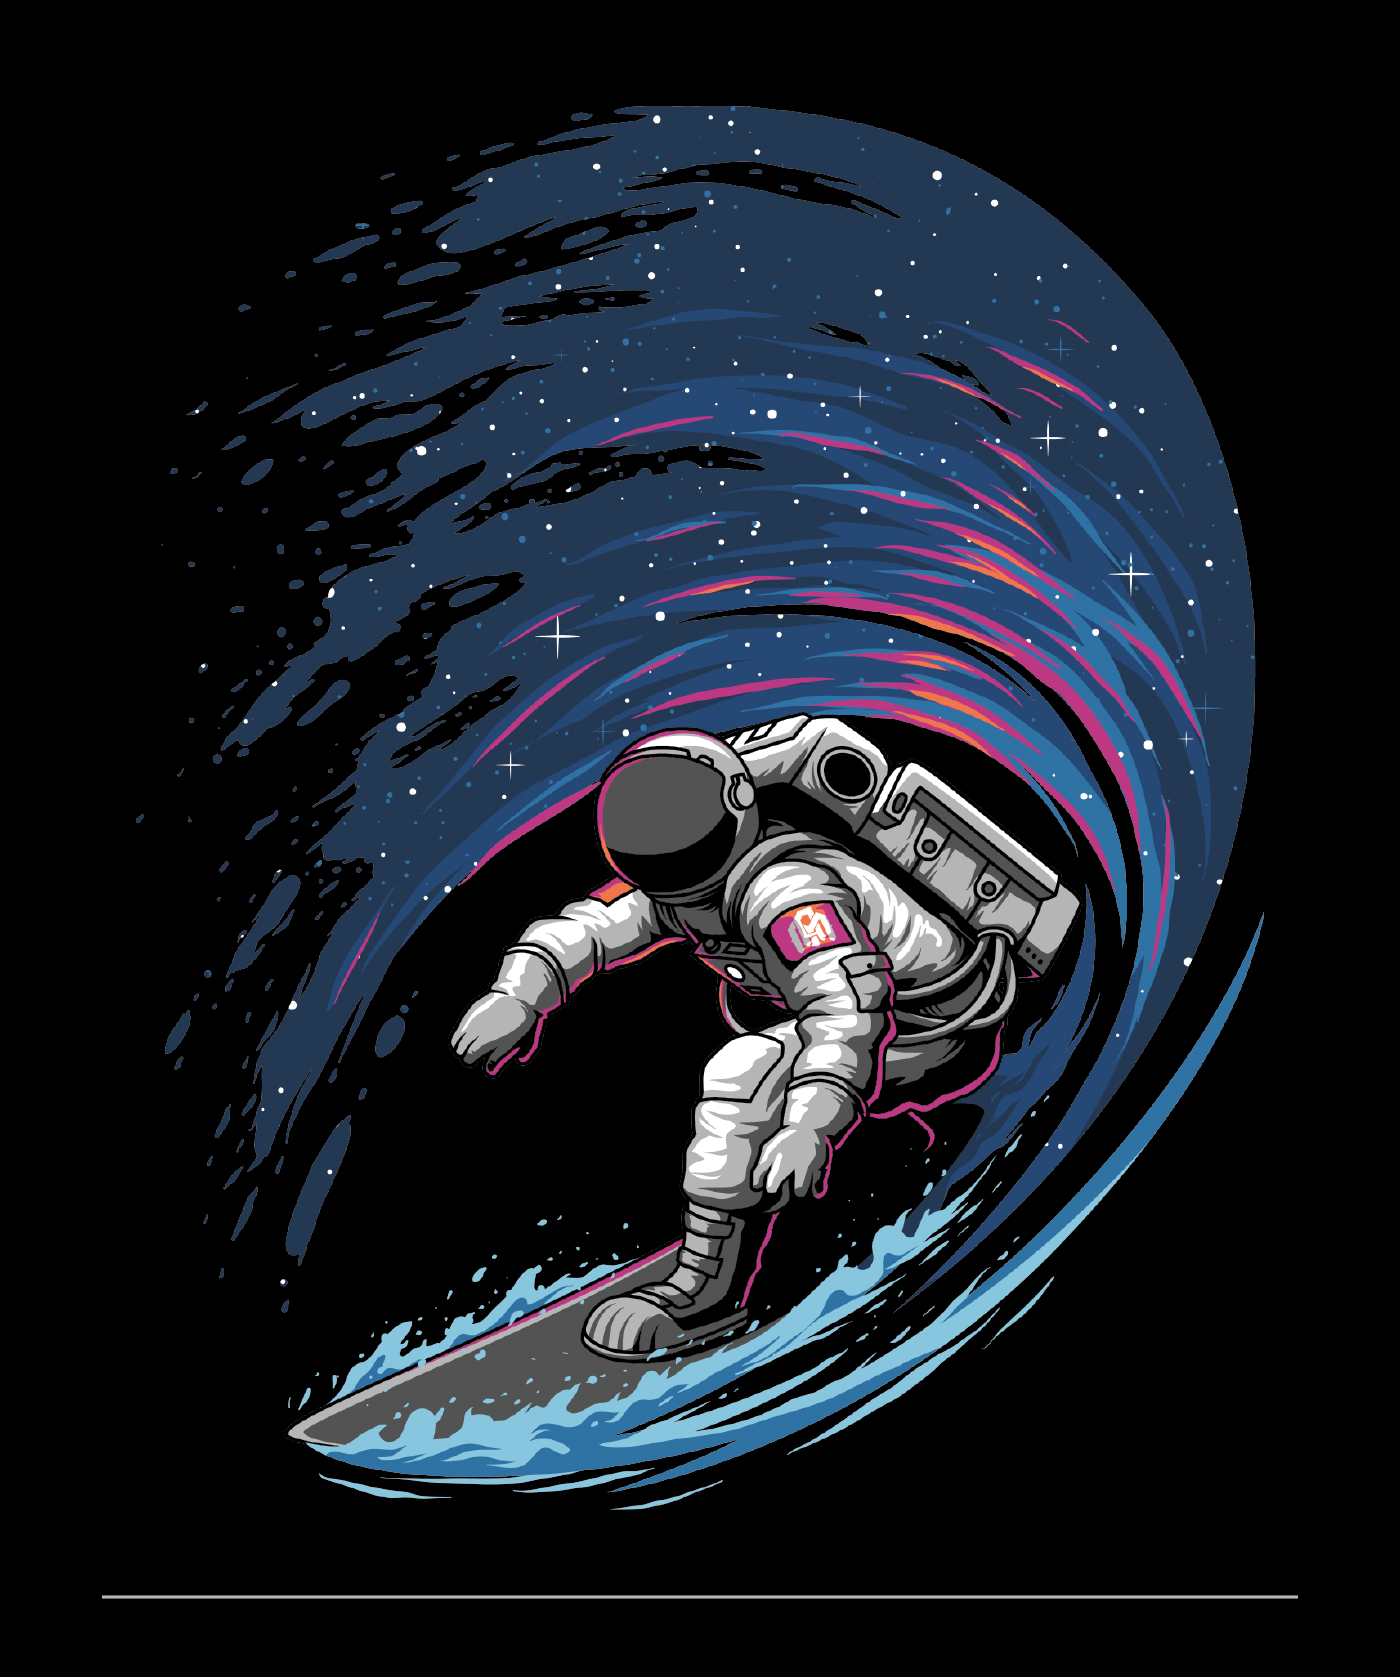 SPACE SURFER on Behance